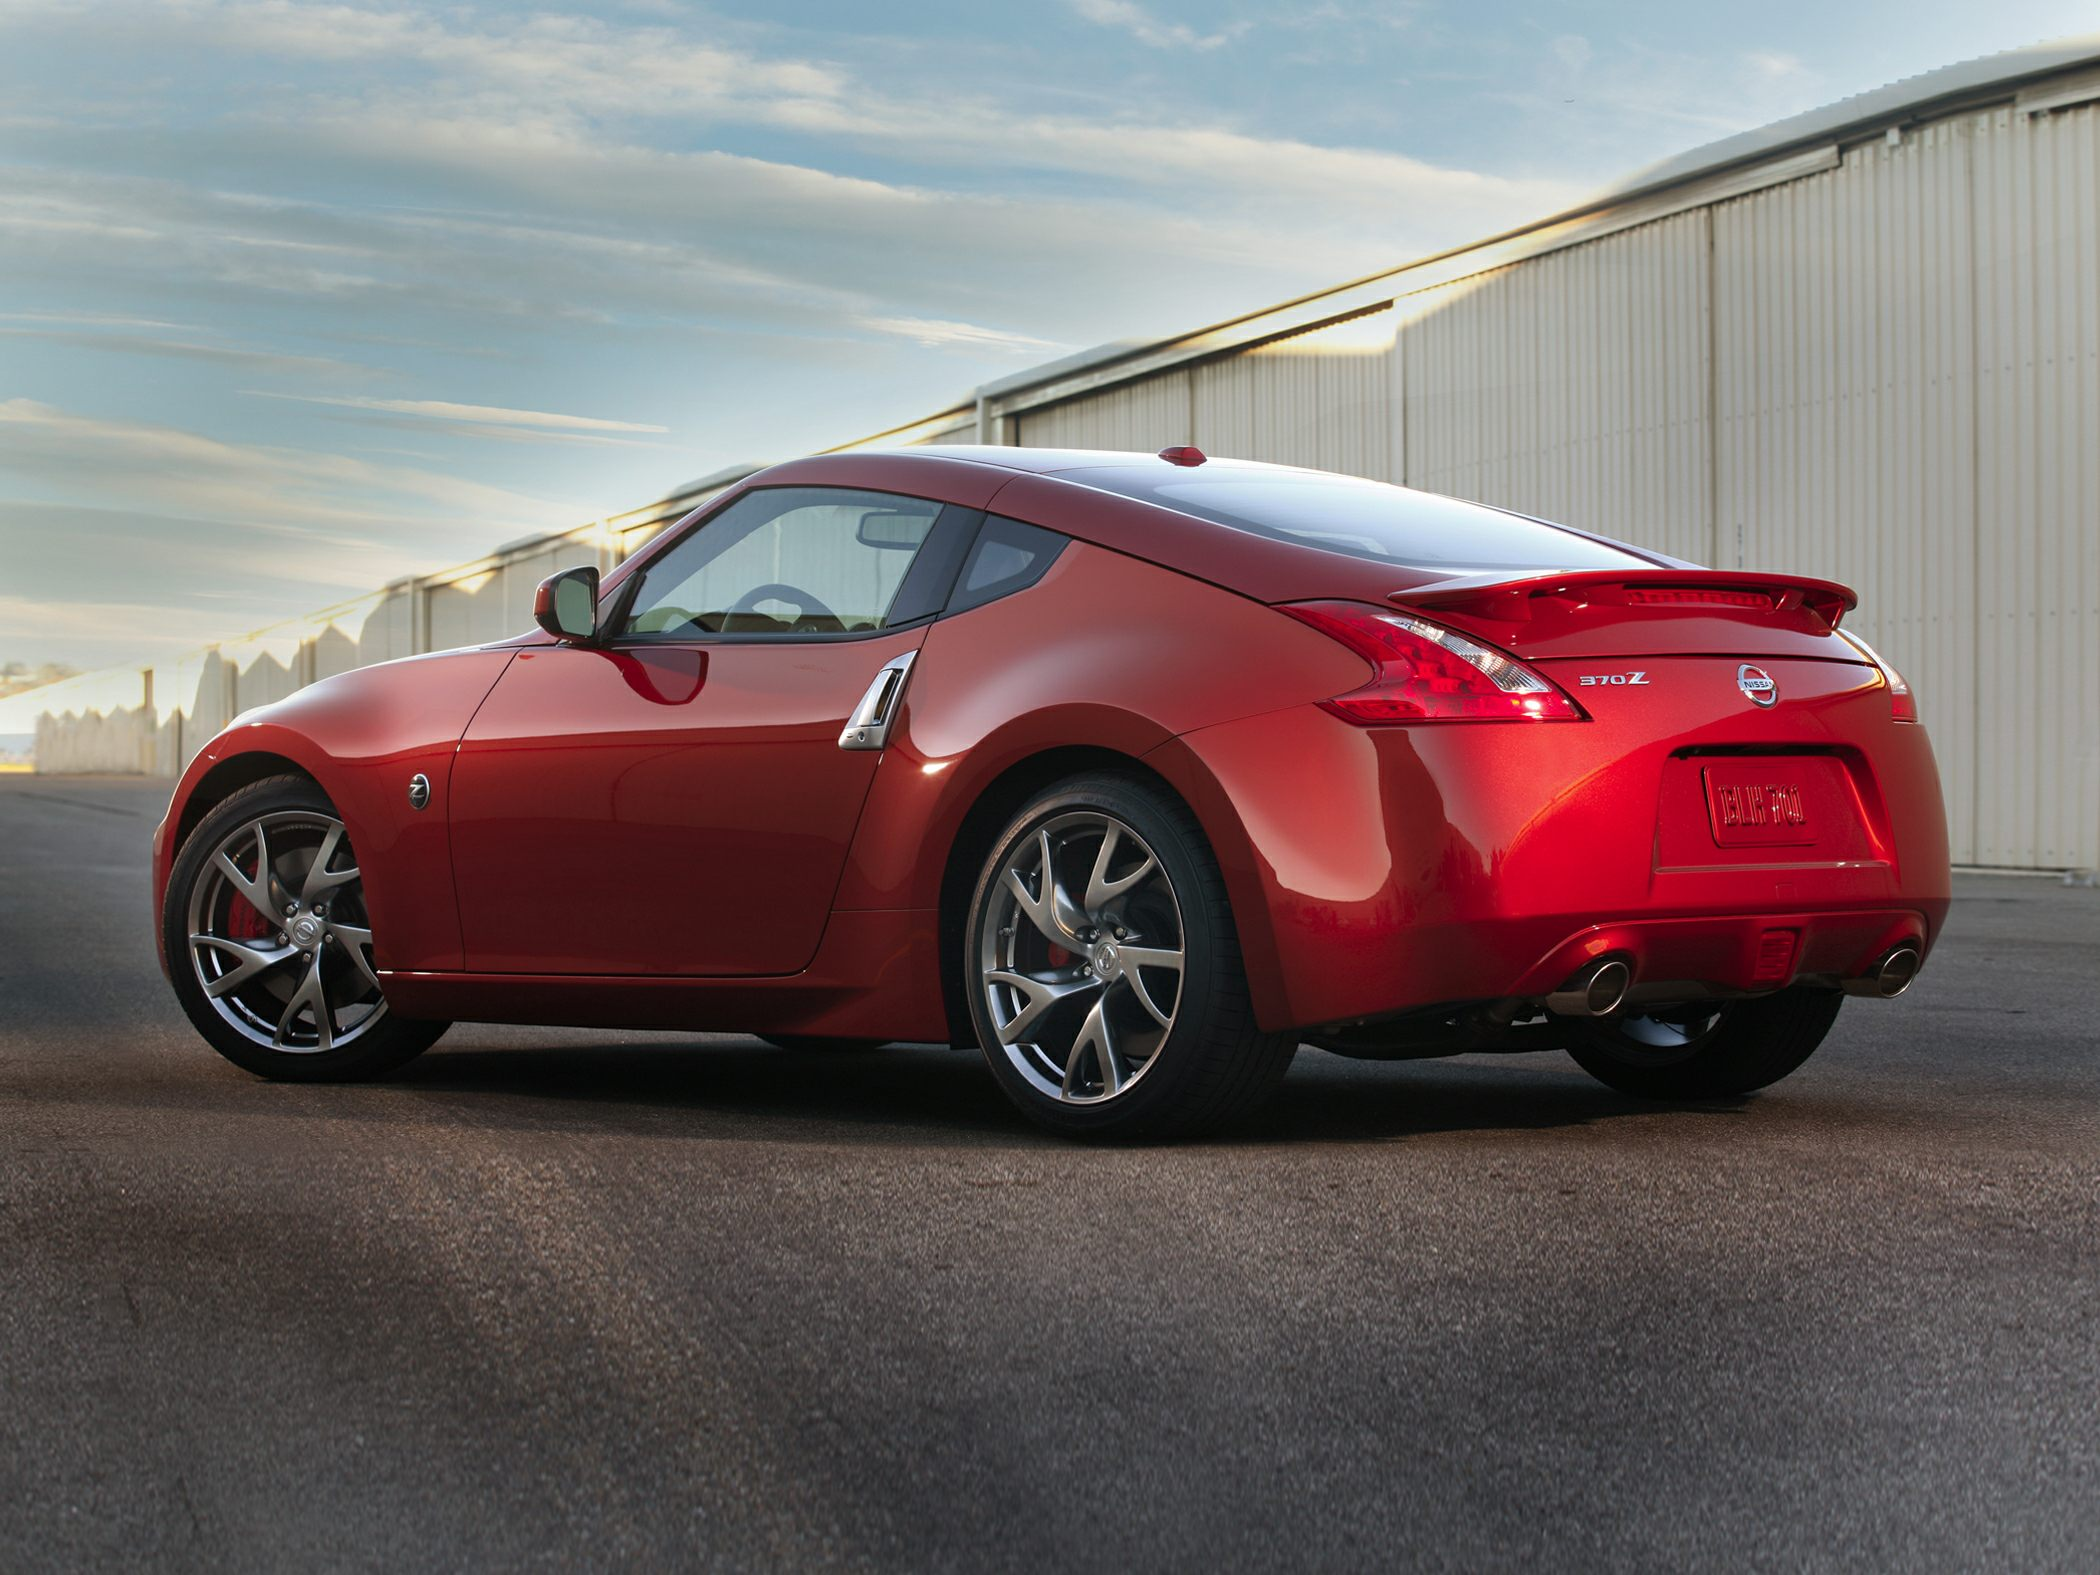 2017 nissan 370z deals prices incentives leases overview carsdirect. Black Bedroom Furniture Sets. Home Design Ideas